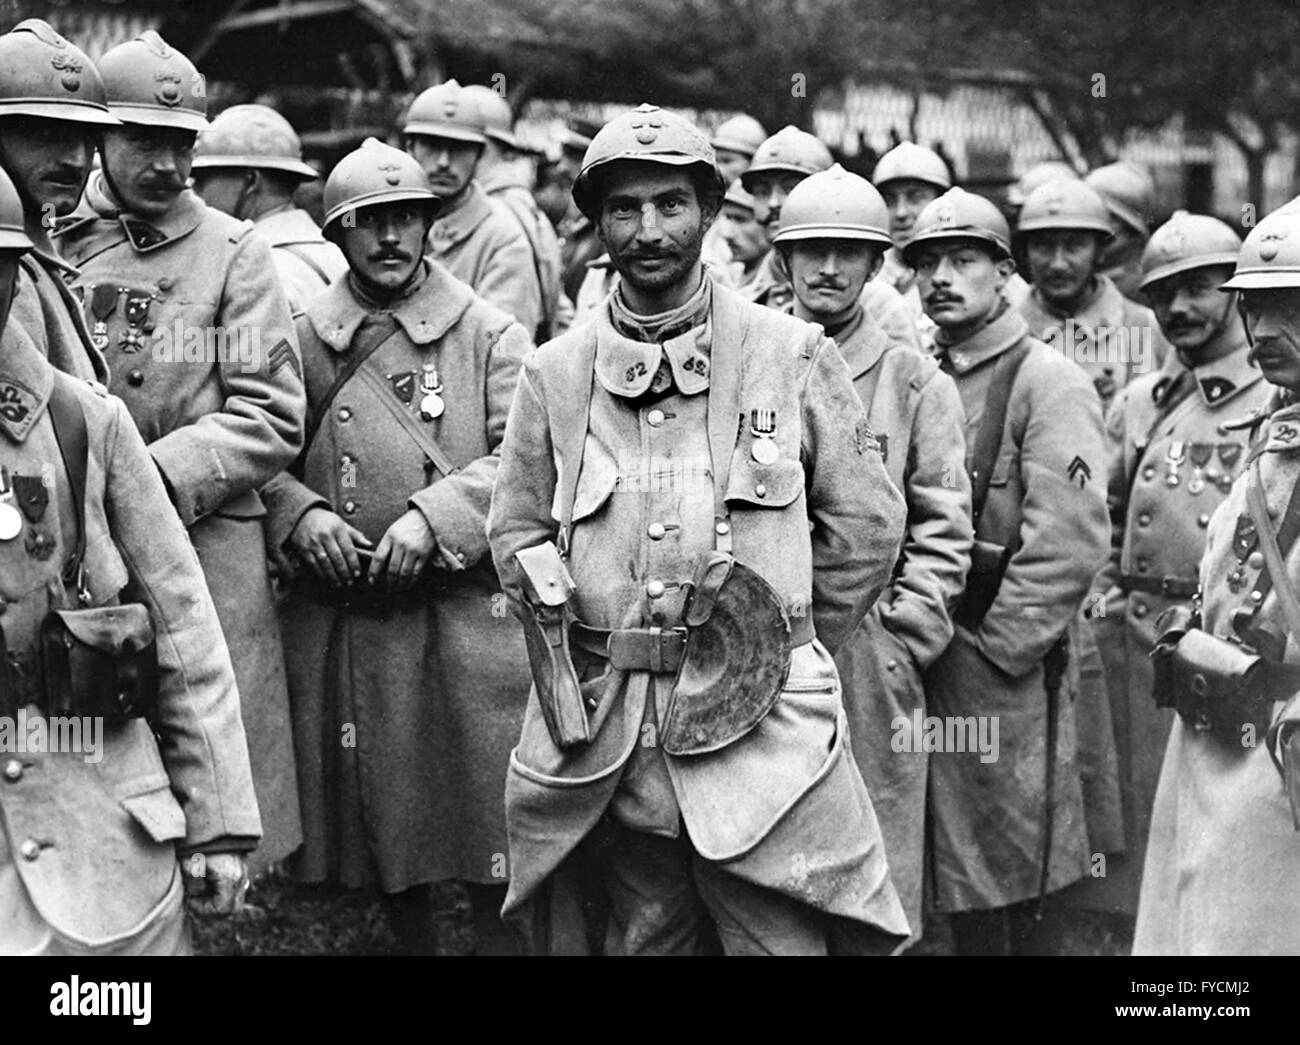 French Infantry soldiers troops during the First World War 1916 - Stock Image